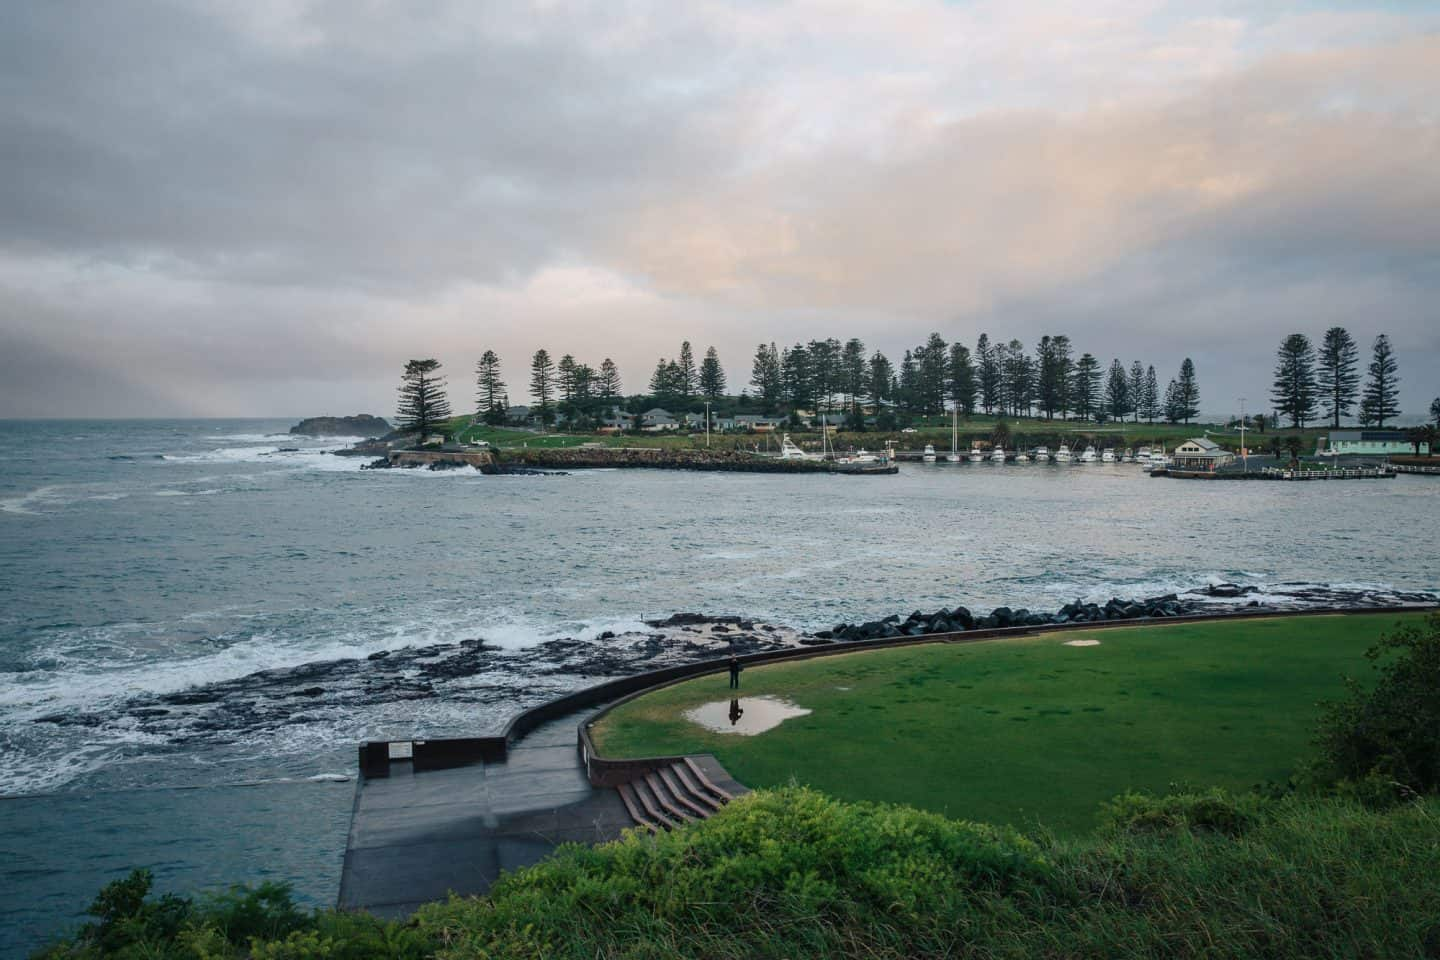 things to do in kiama, kiama things to do, kiama attractions, kiama coastal walk, things to do kiama, what to do in kiama, blow hole kiama, Kiama, Kiama Australia, Kiama new, Kiama blow hole, Kiama little blow hole